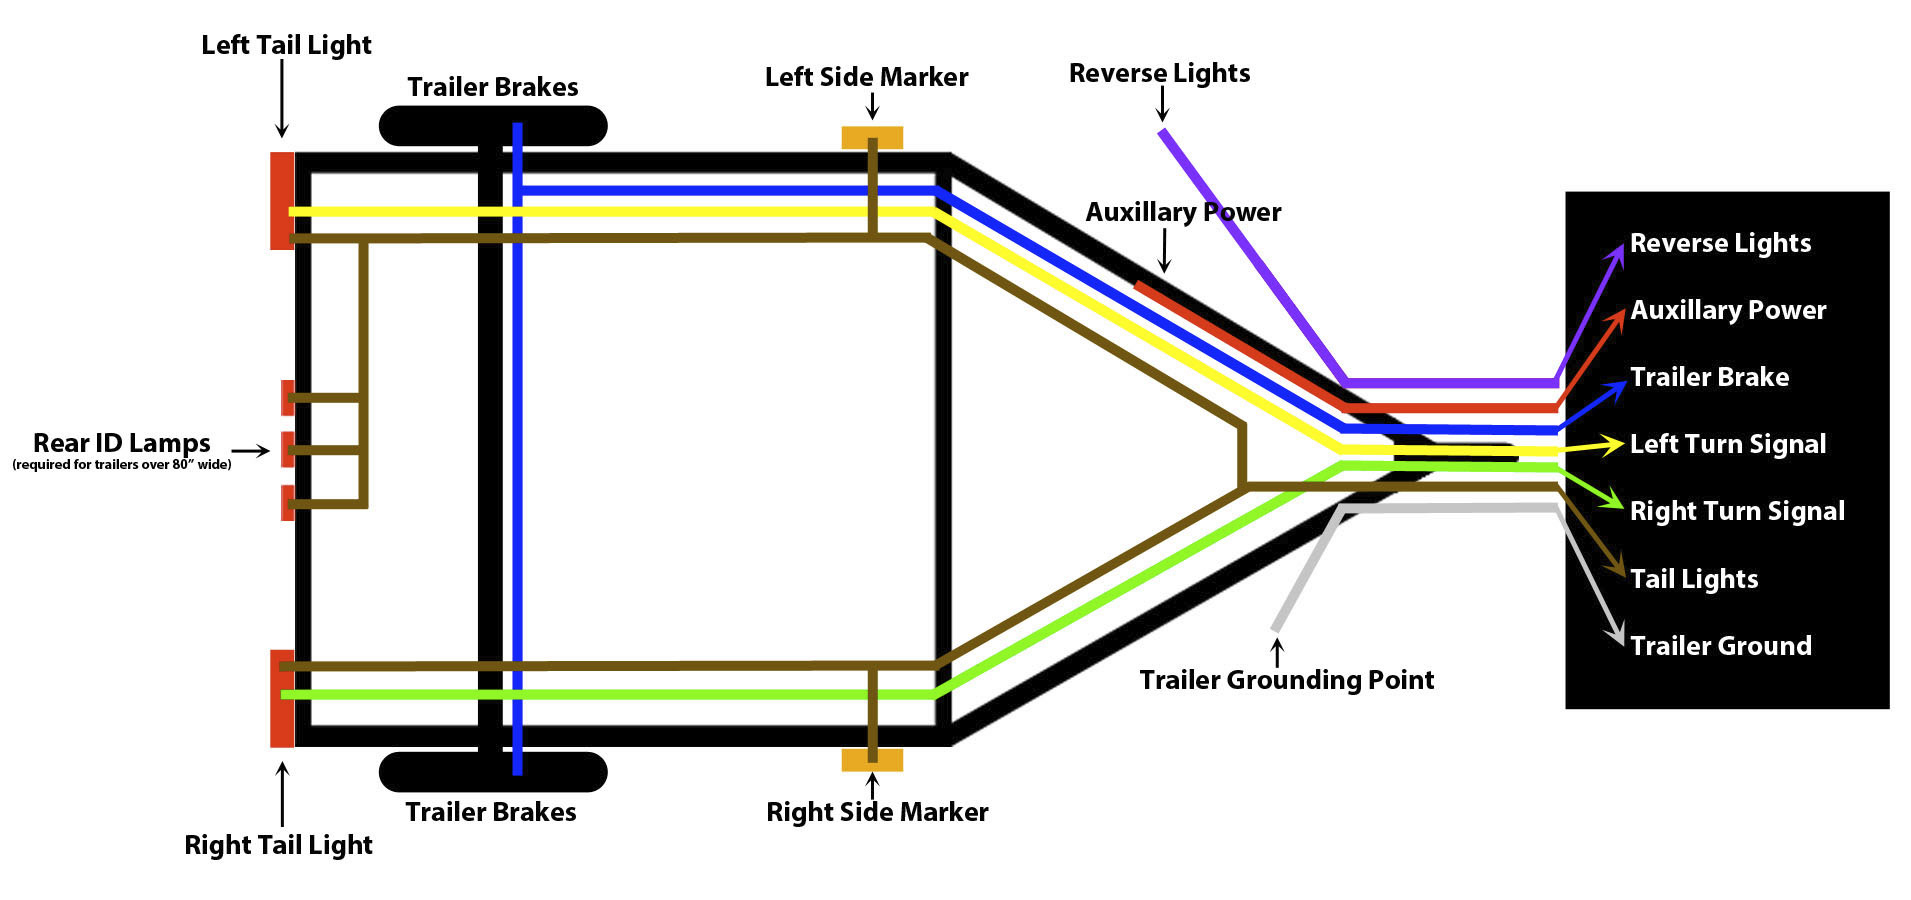 How To Wire Trailer Lights - Trailer Wiring Guide & Videos - 6 Wire Plug Trailer Wiring Diagram